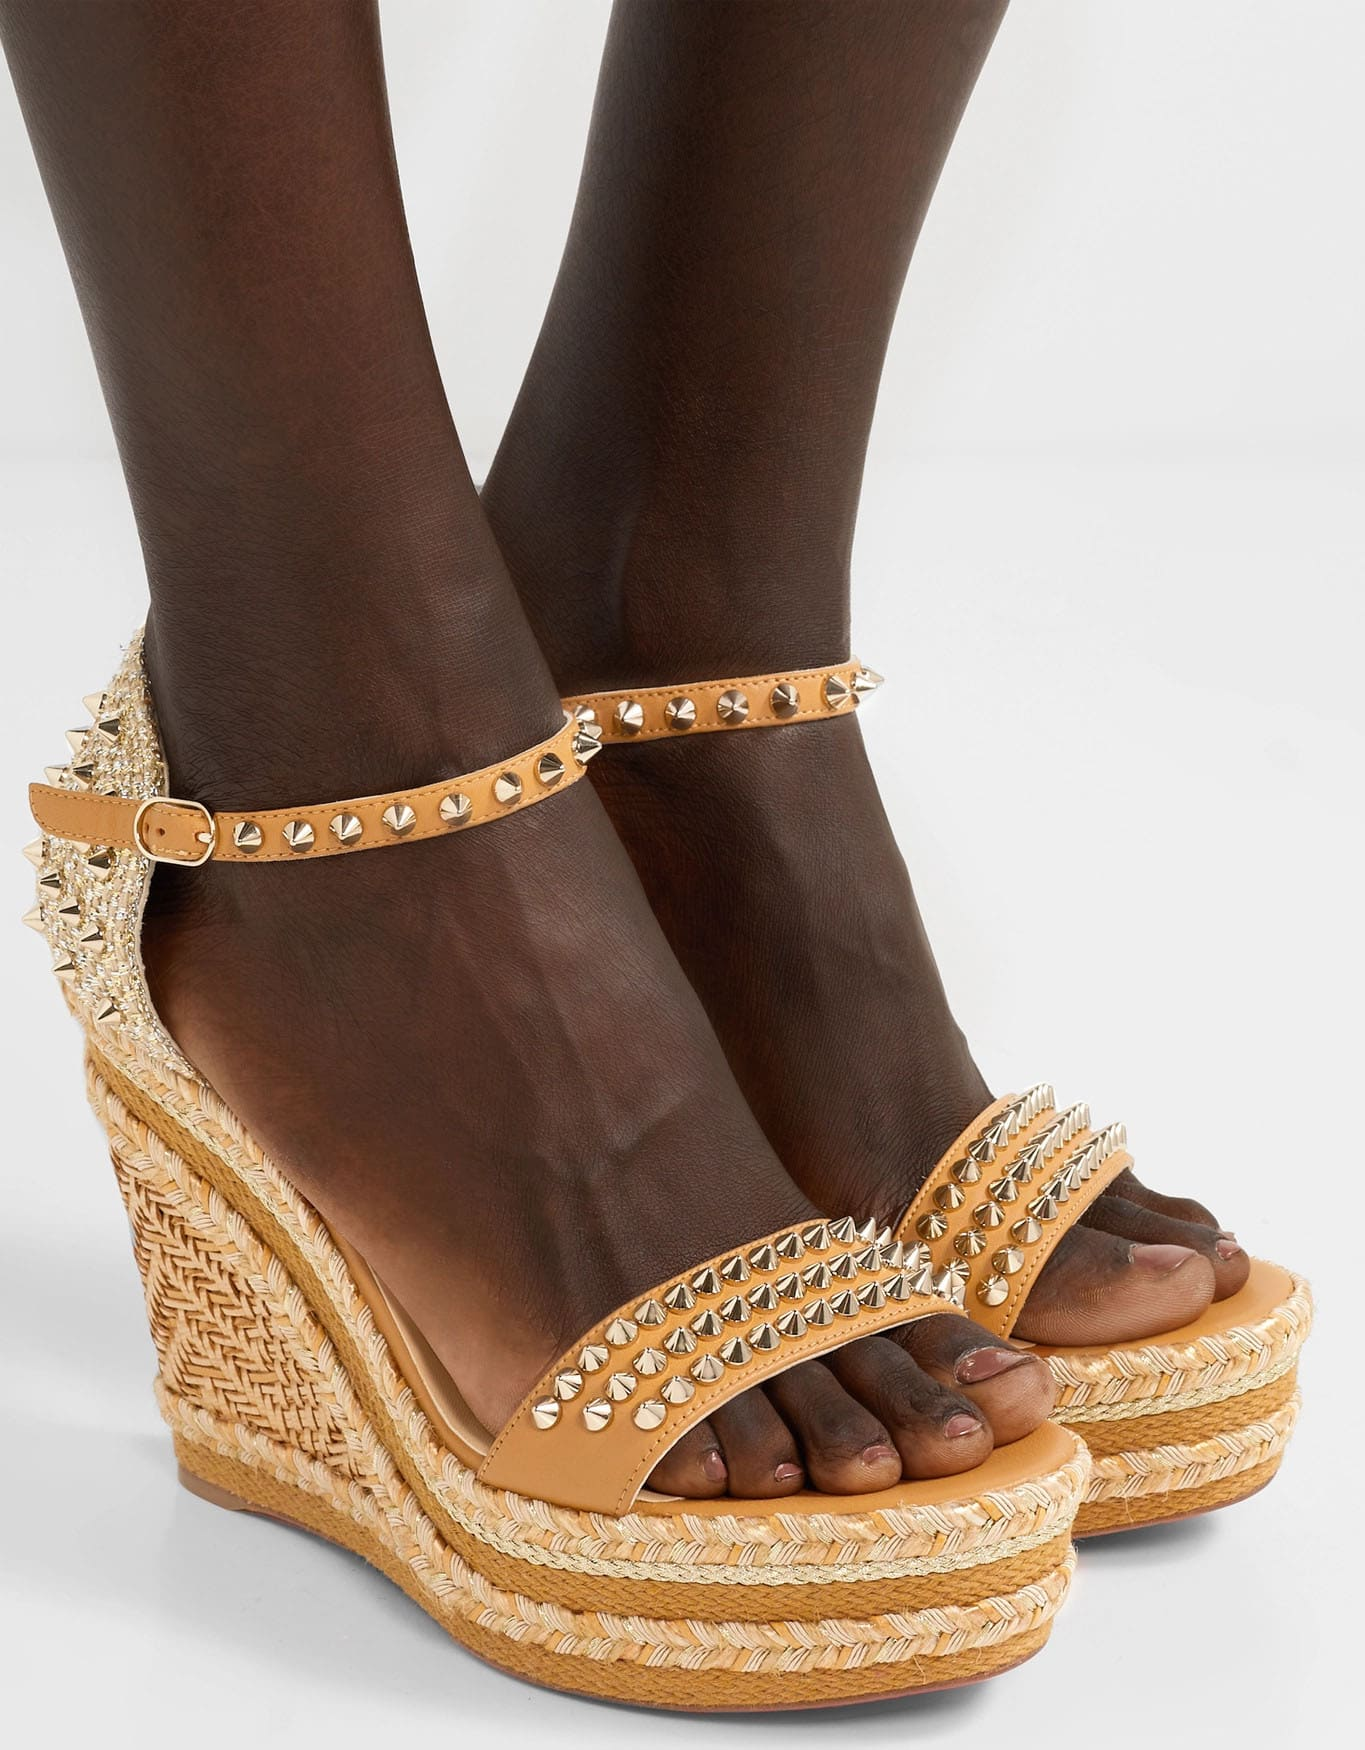 Christian Louboutin's Madmonica espadrille wedges are dangerously chic with golden spike studs and raffia trims